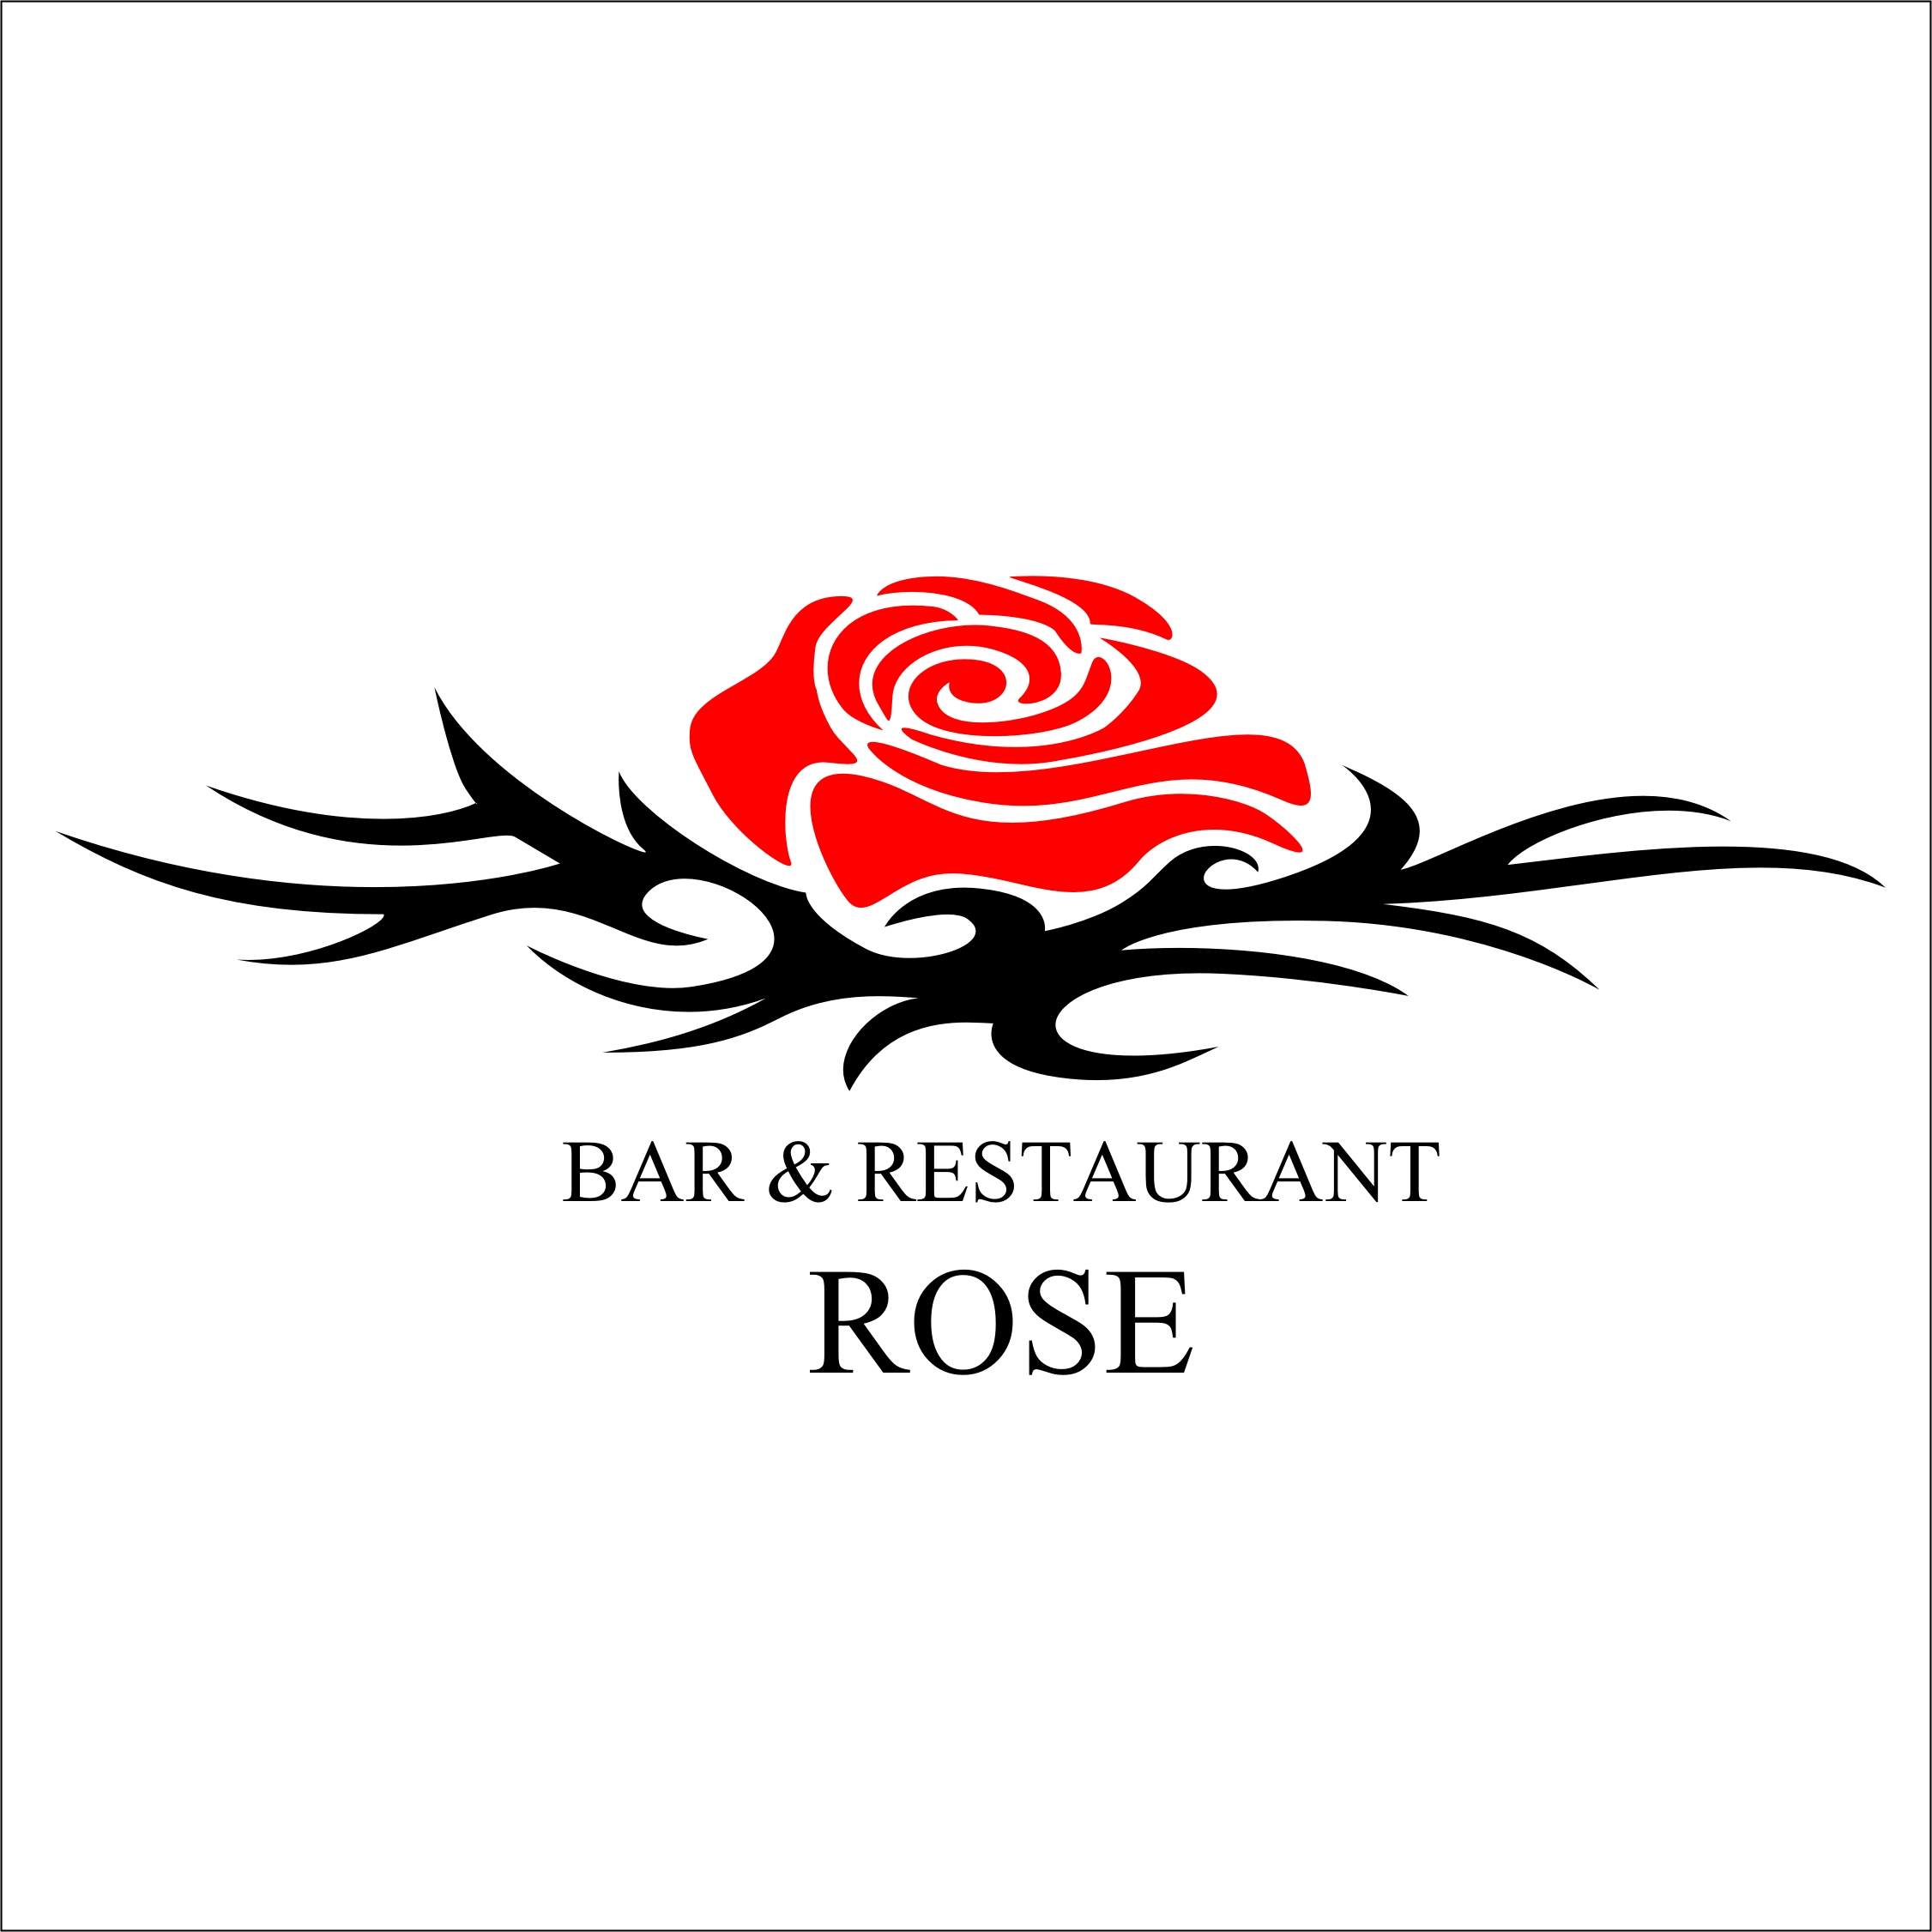 Rose Bar & Restaurant